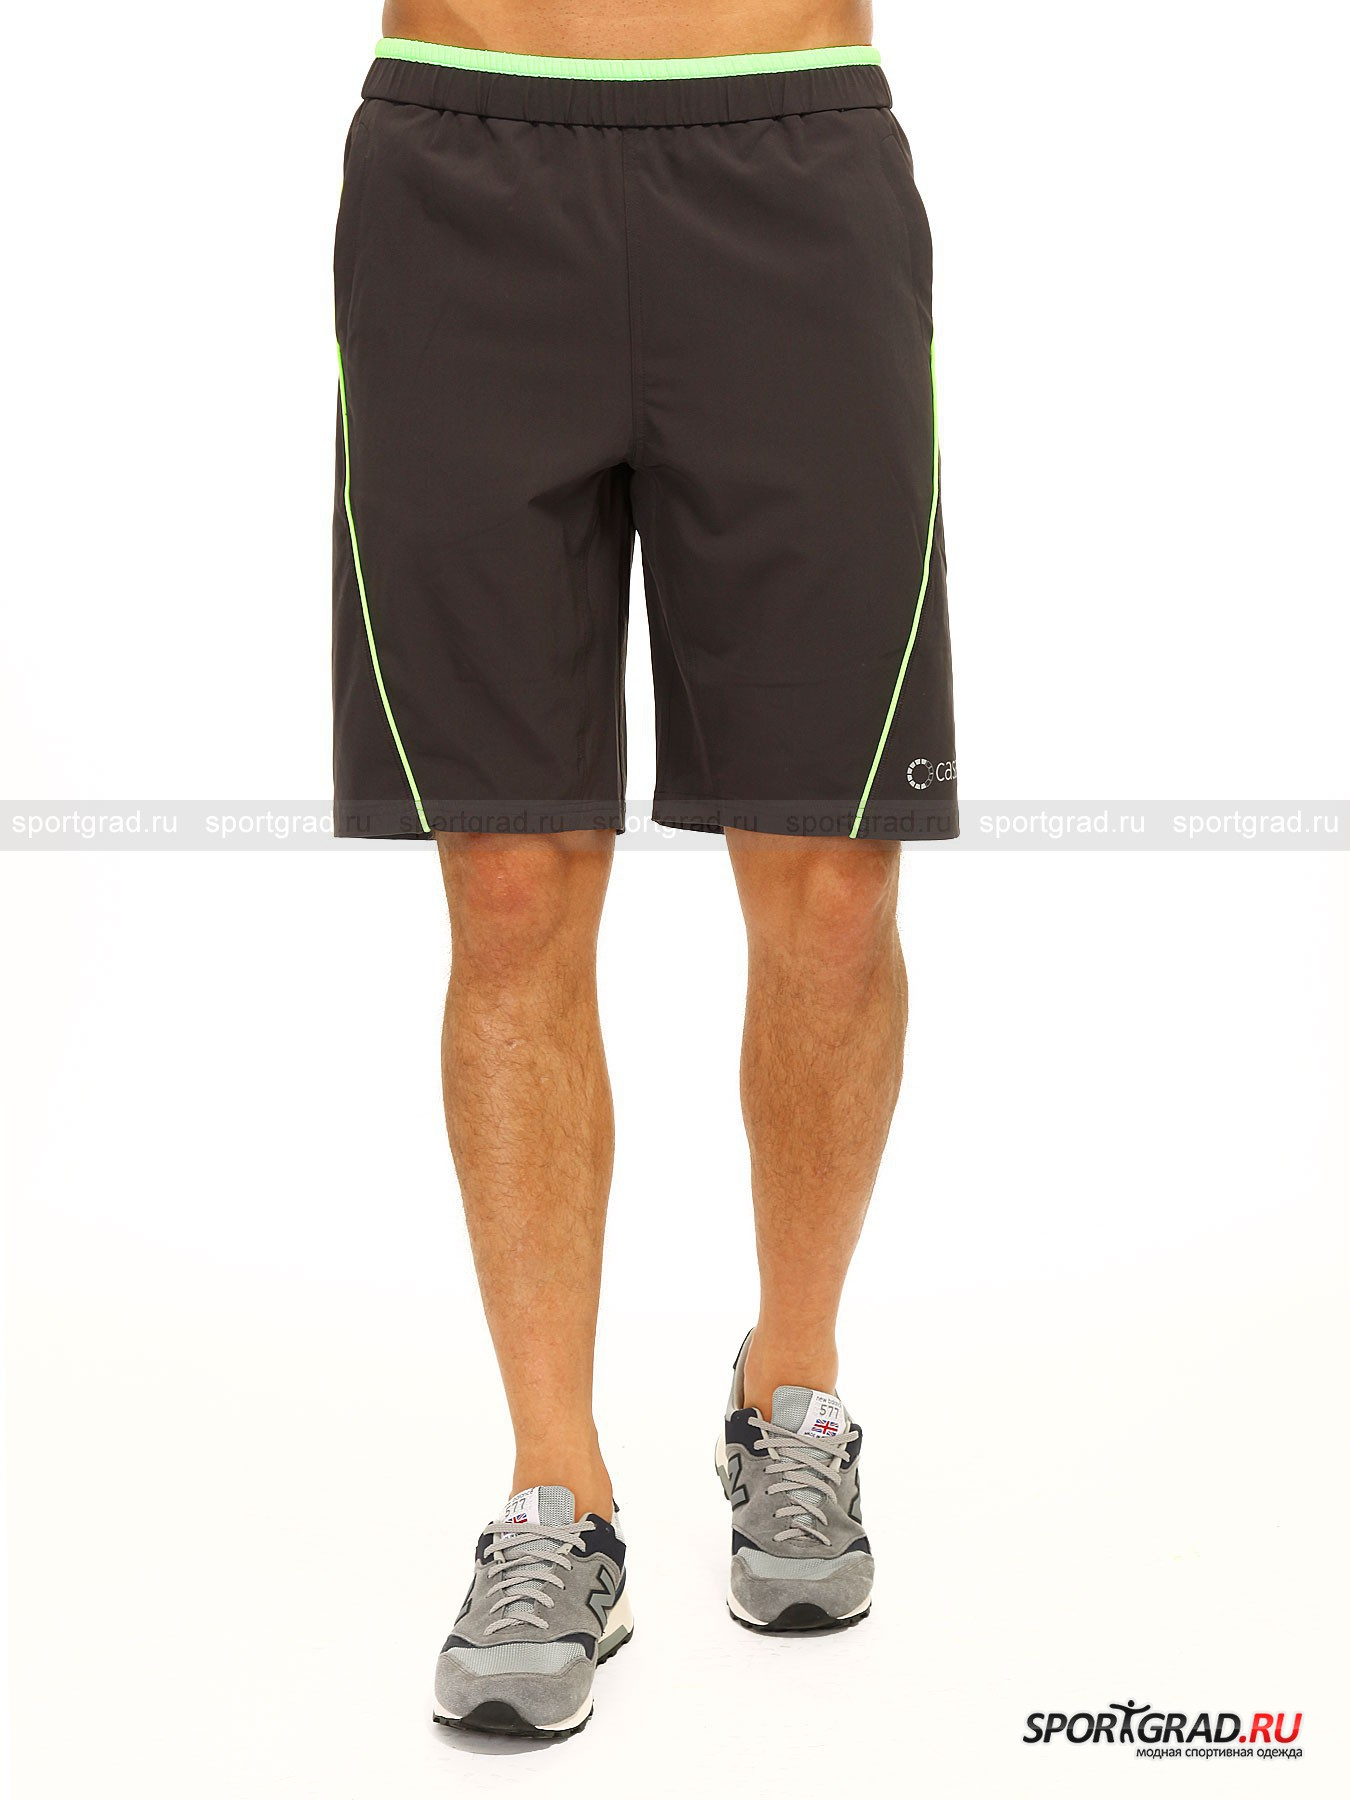 ����� ������� Move training shorts CASALL ��� ������� �������